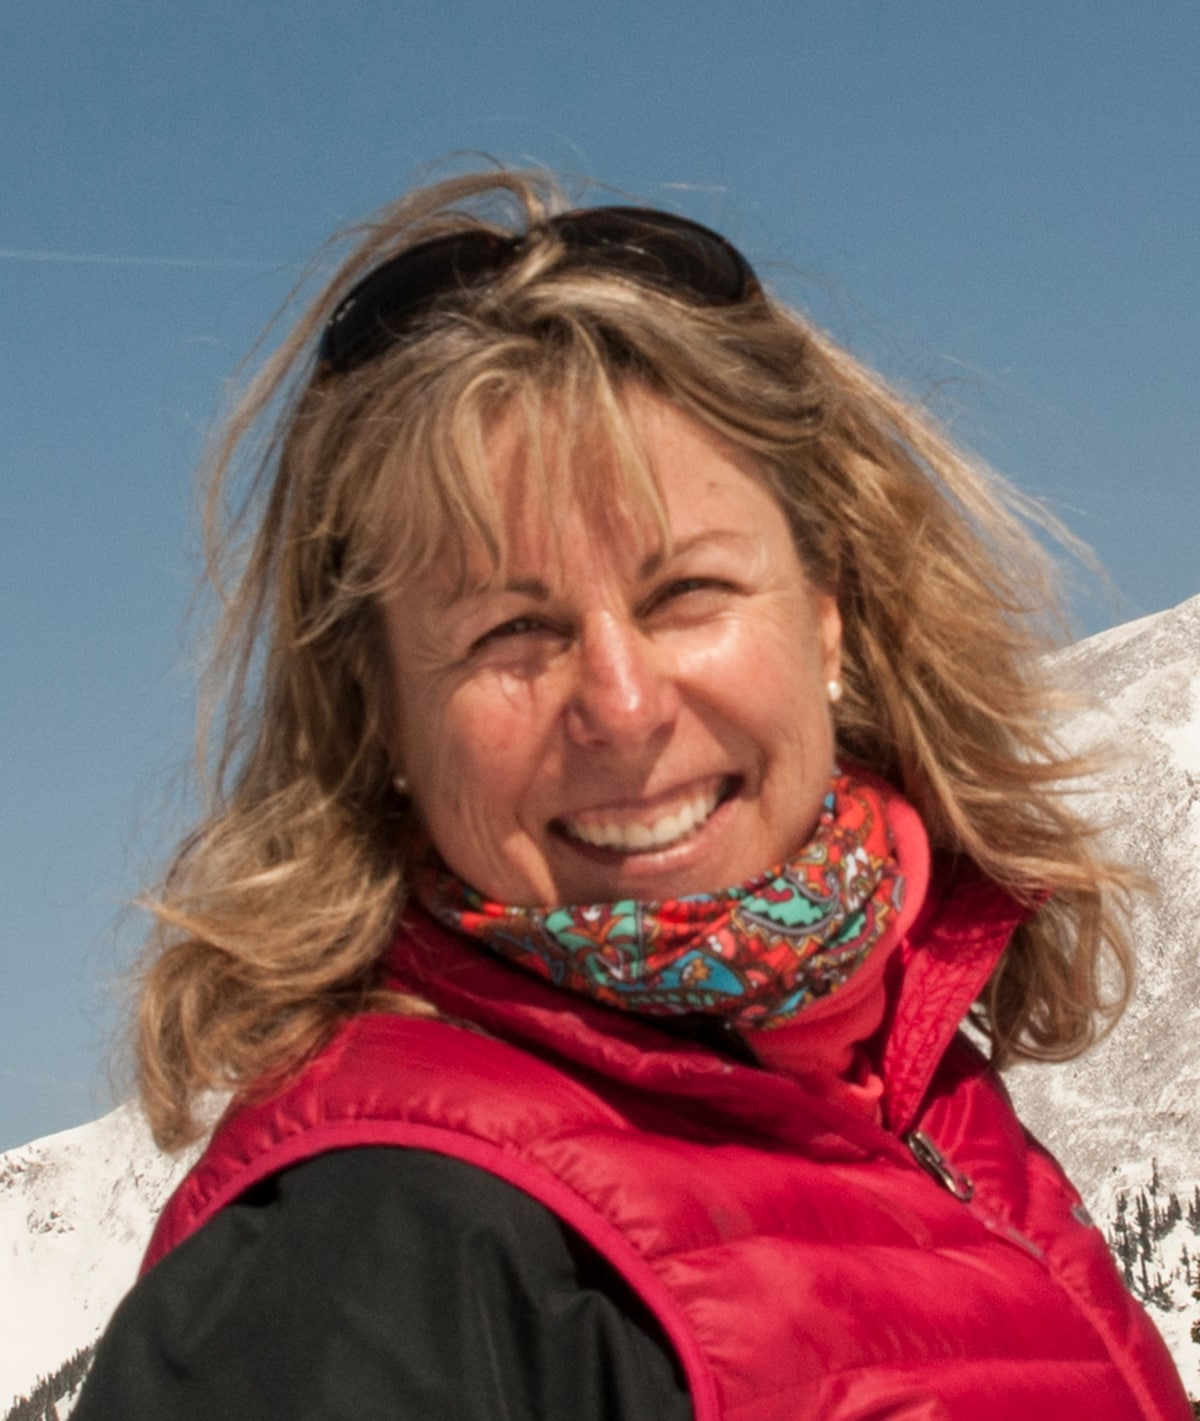 Karin From Colorado, United States